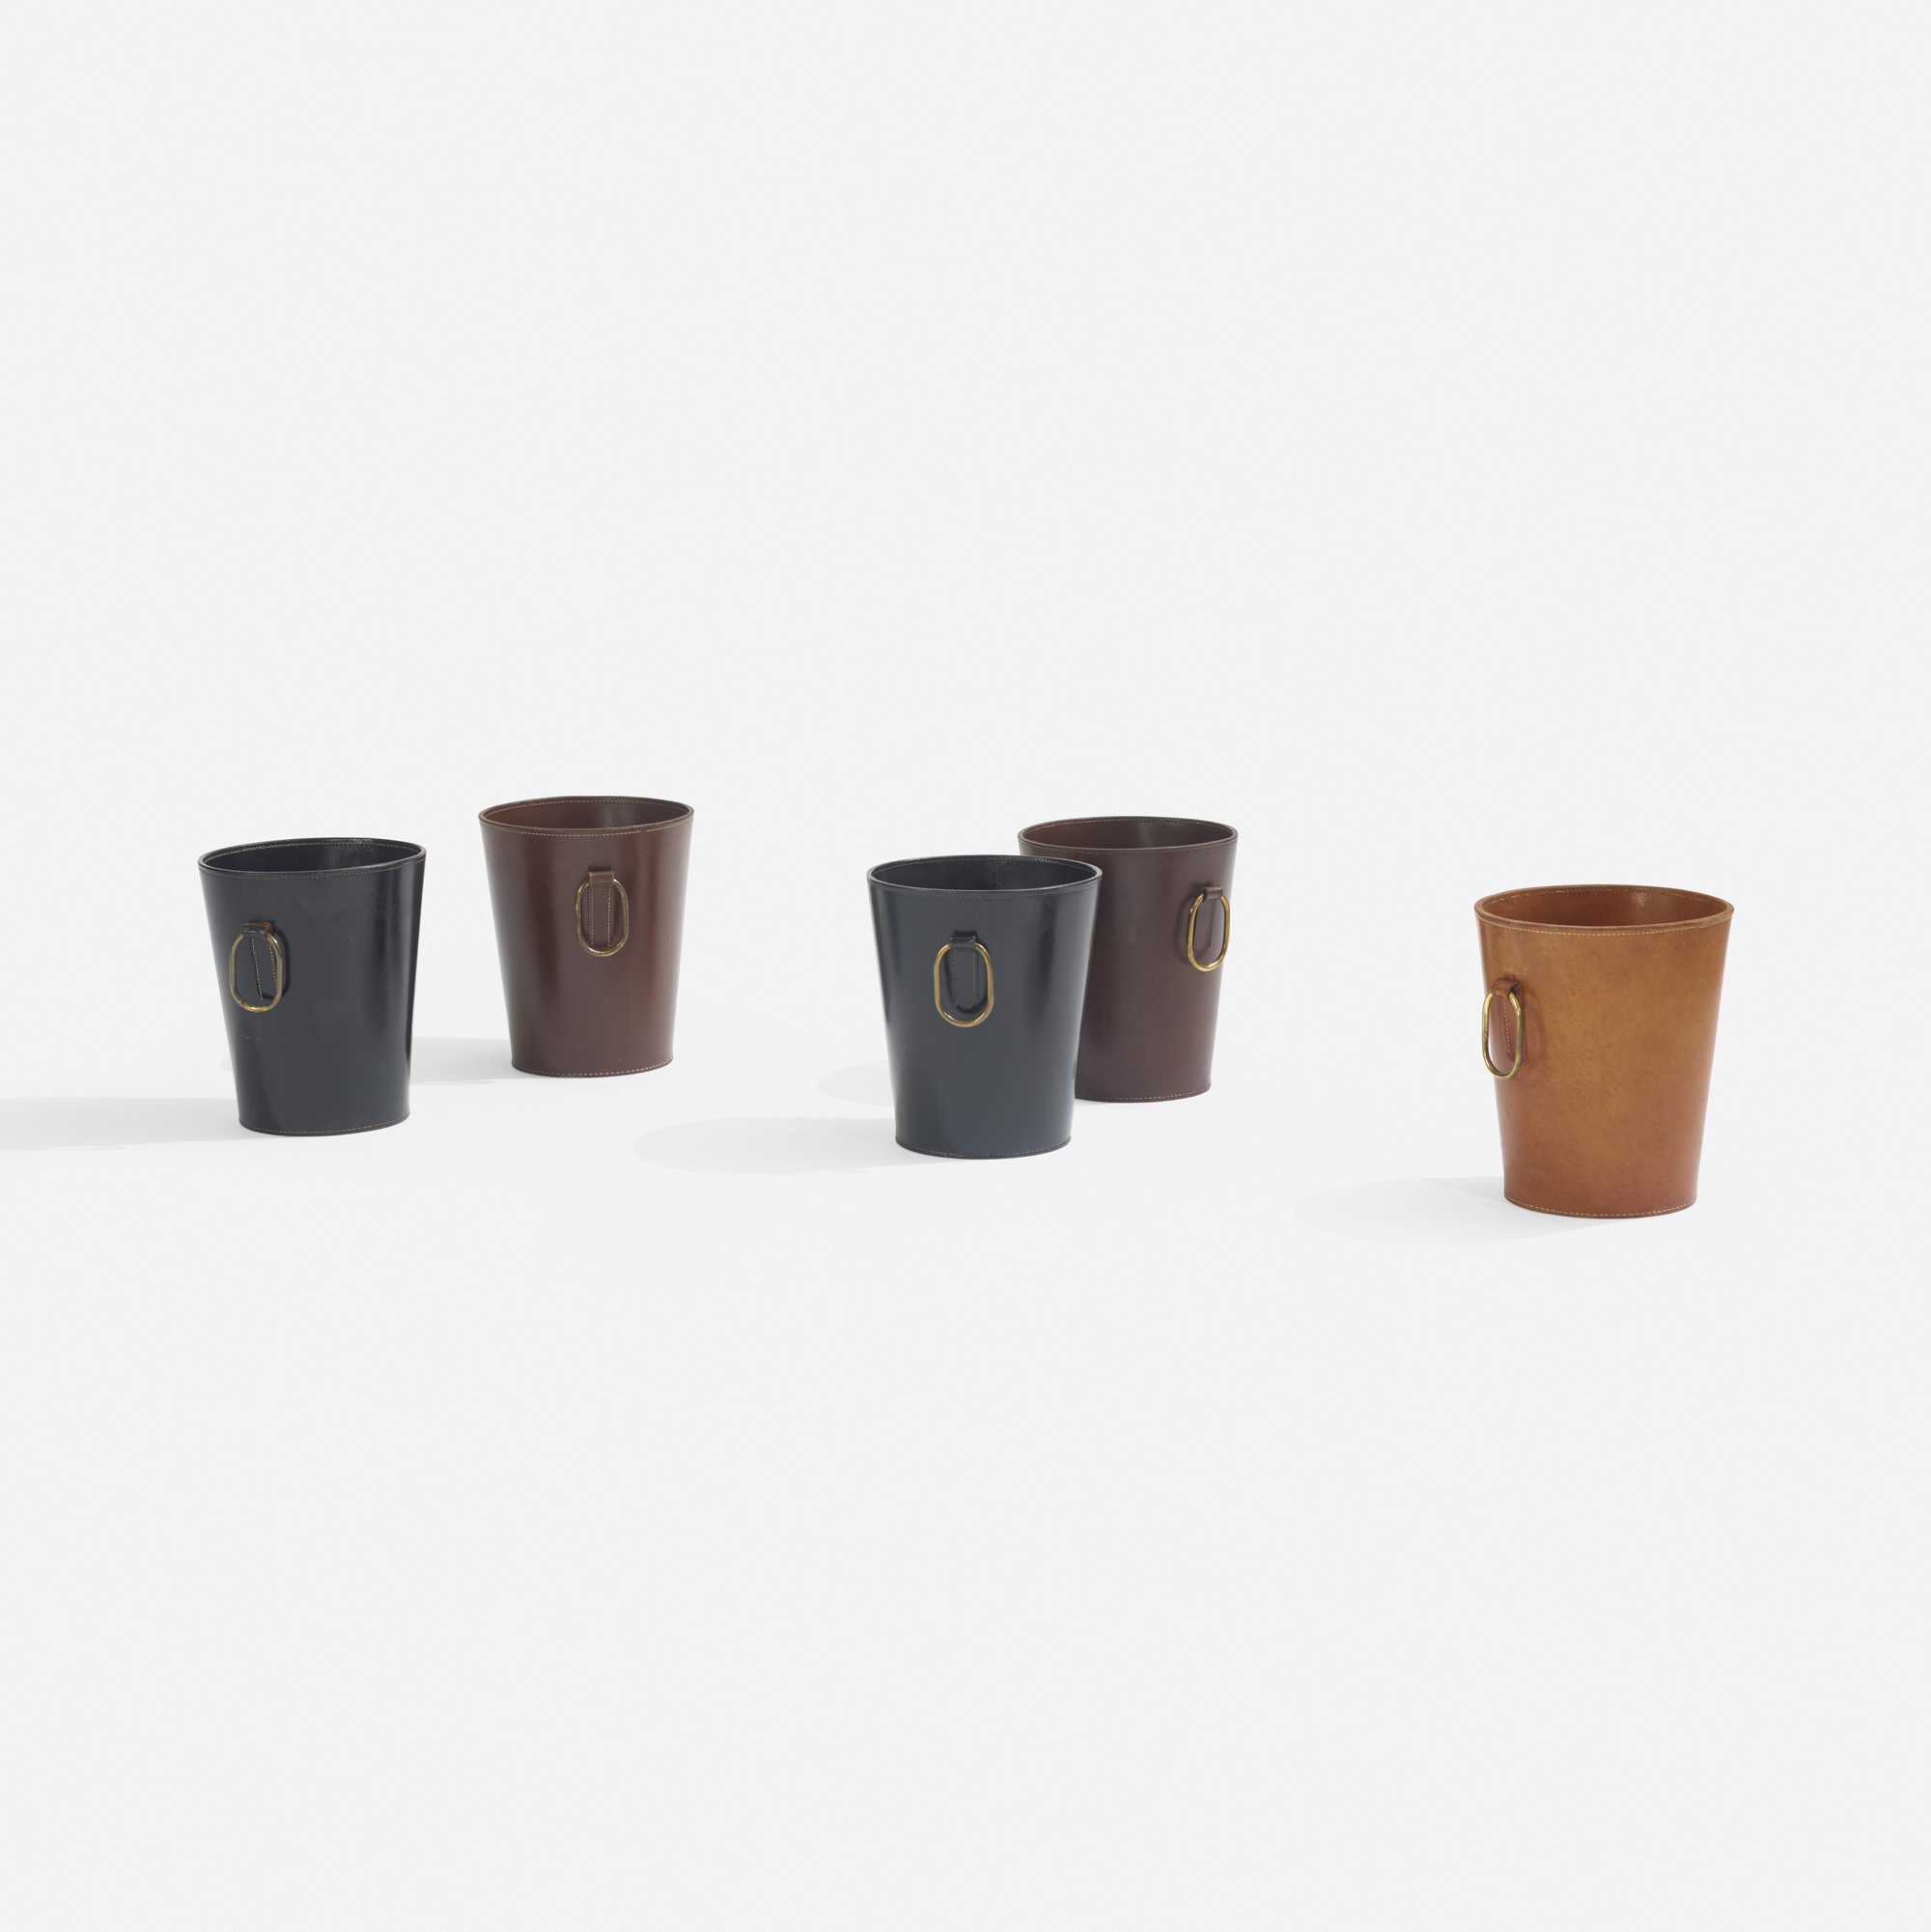 236: Illums Bolighus / wastepaper baskets, set of five (1 of 3)